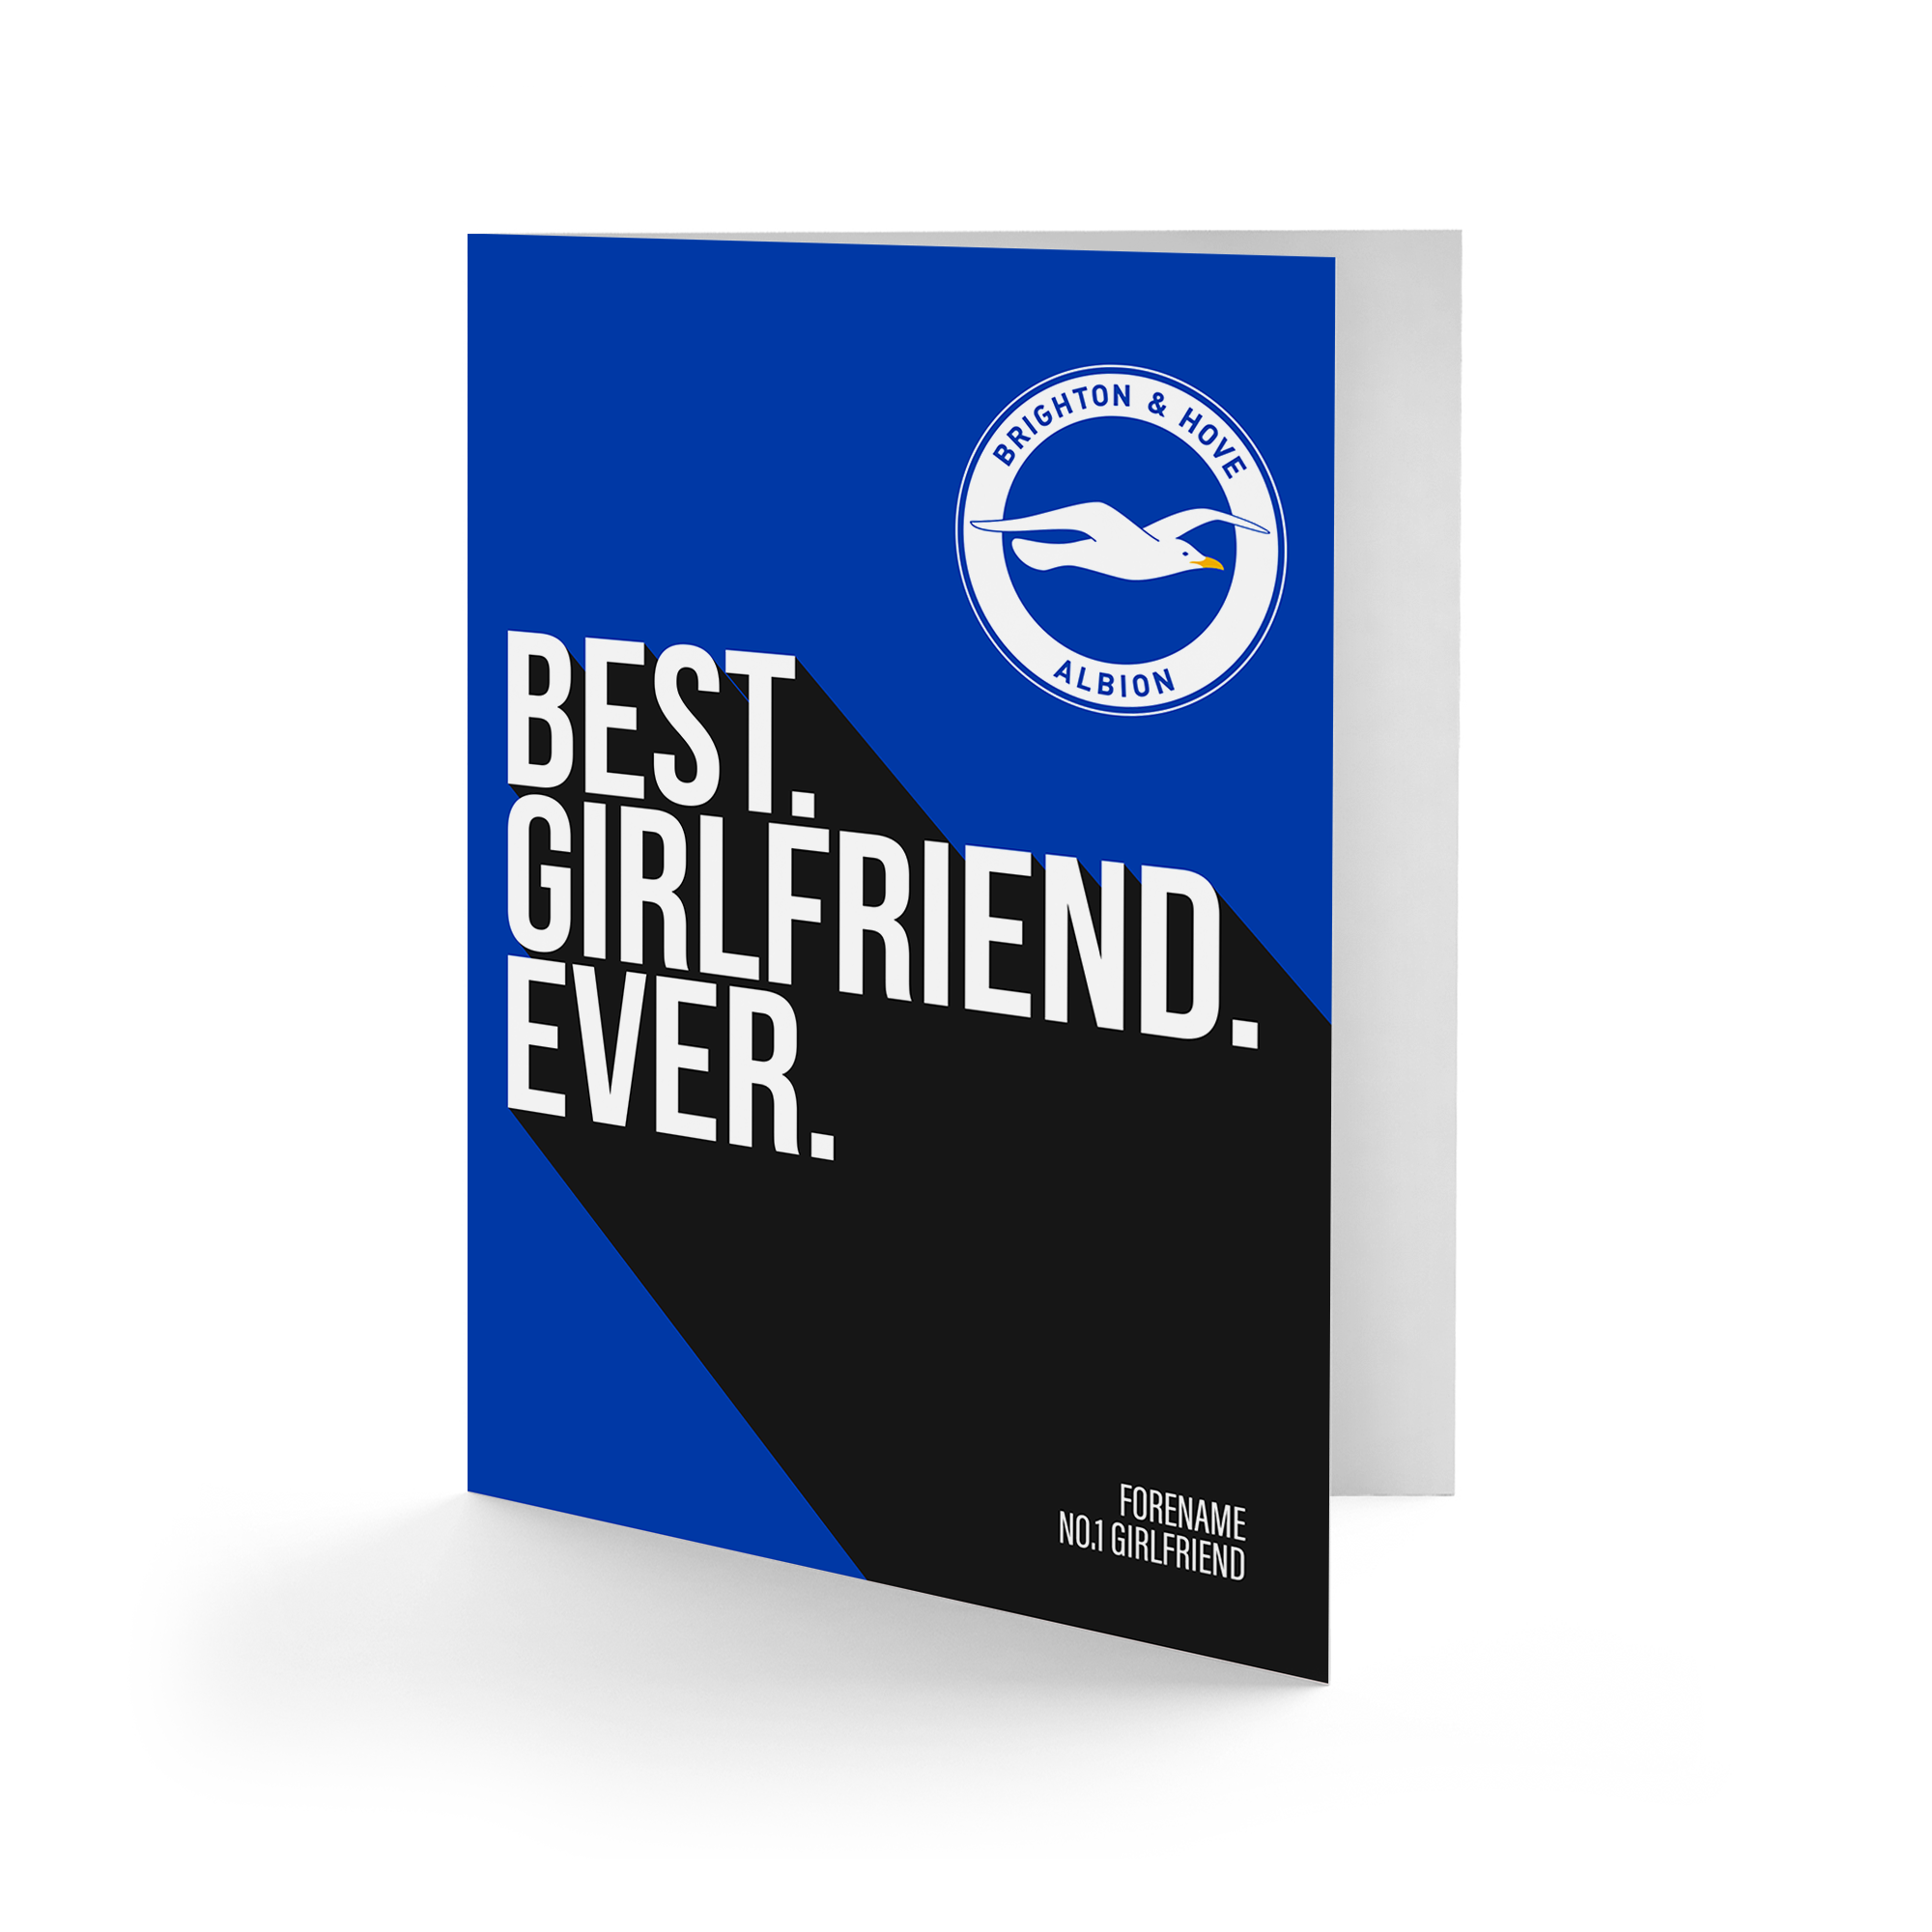 Brighton & Hove Albion FC Best Girlfriend Ever Card